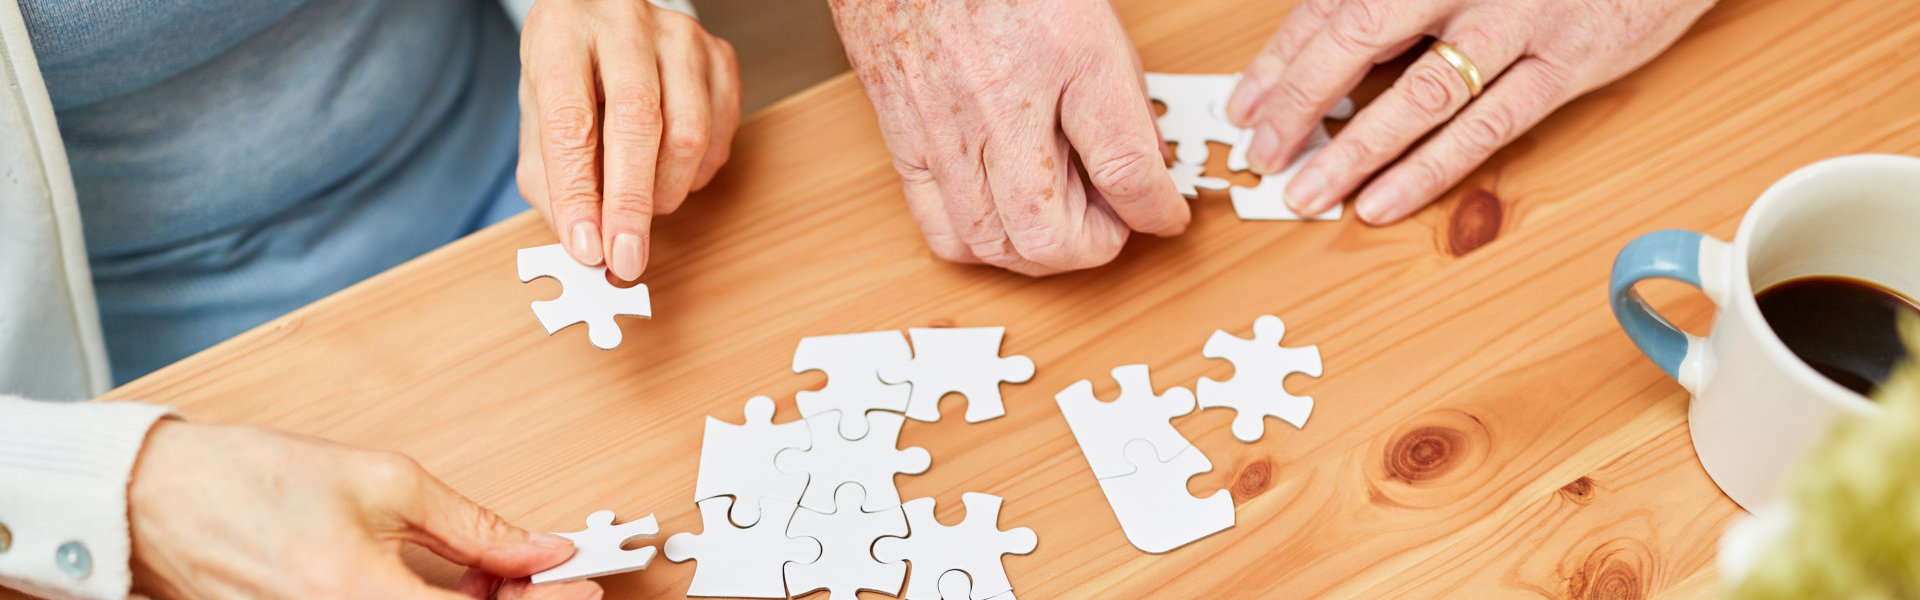 elderly people playing puzzle